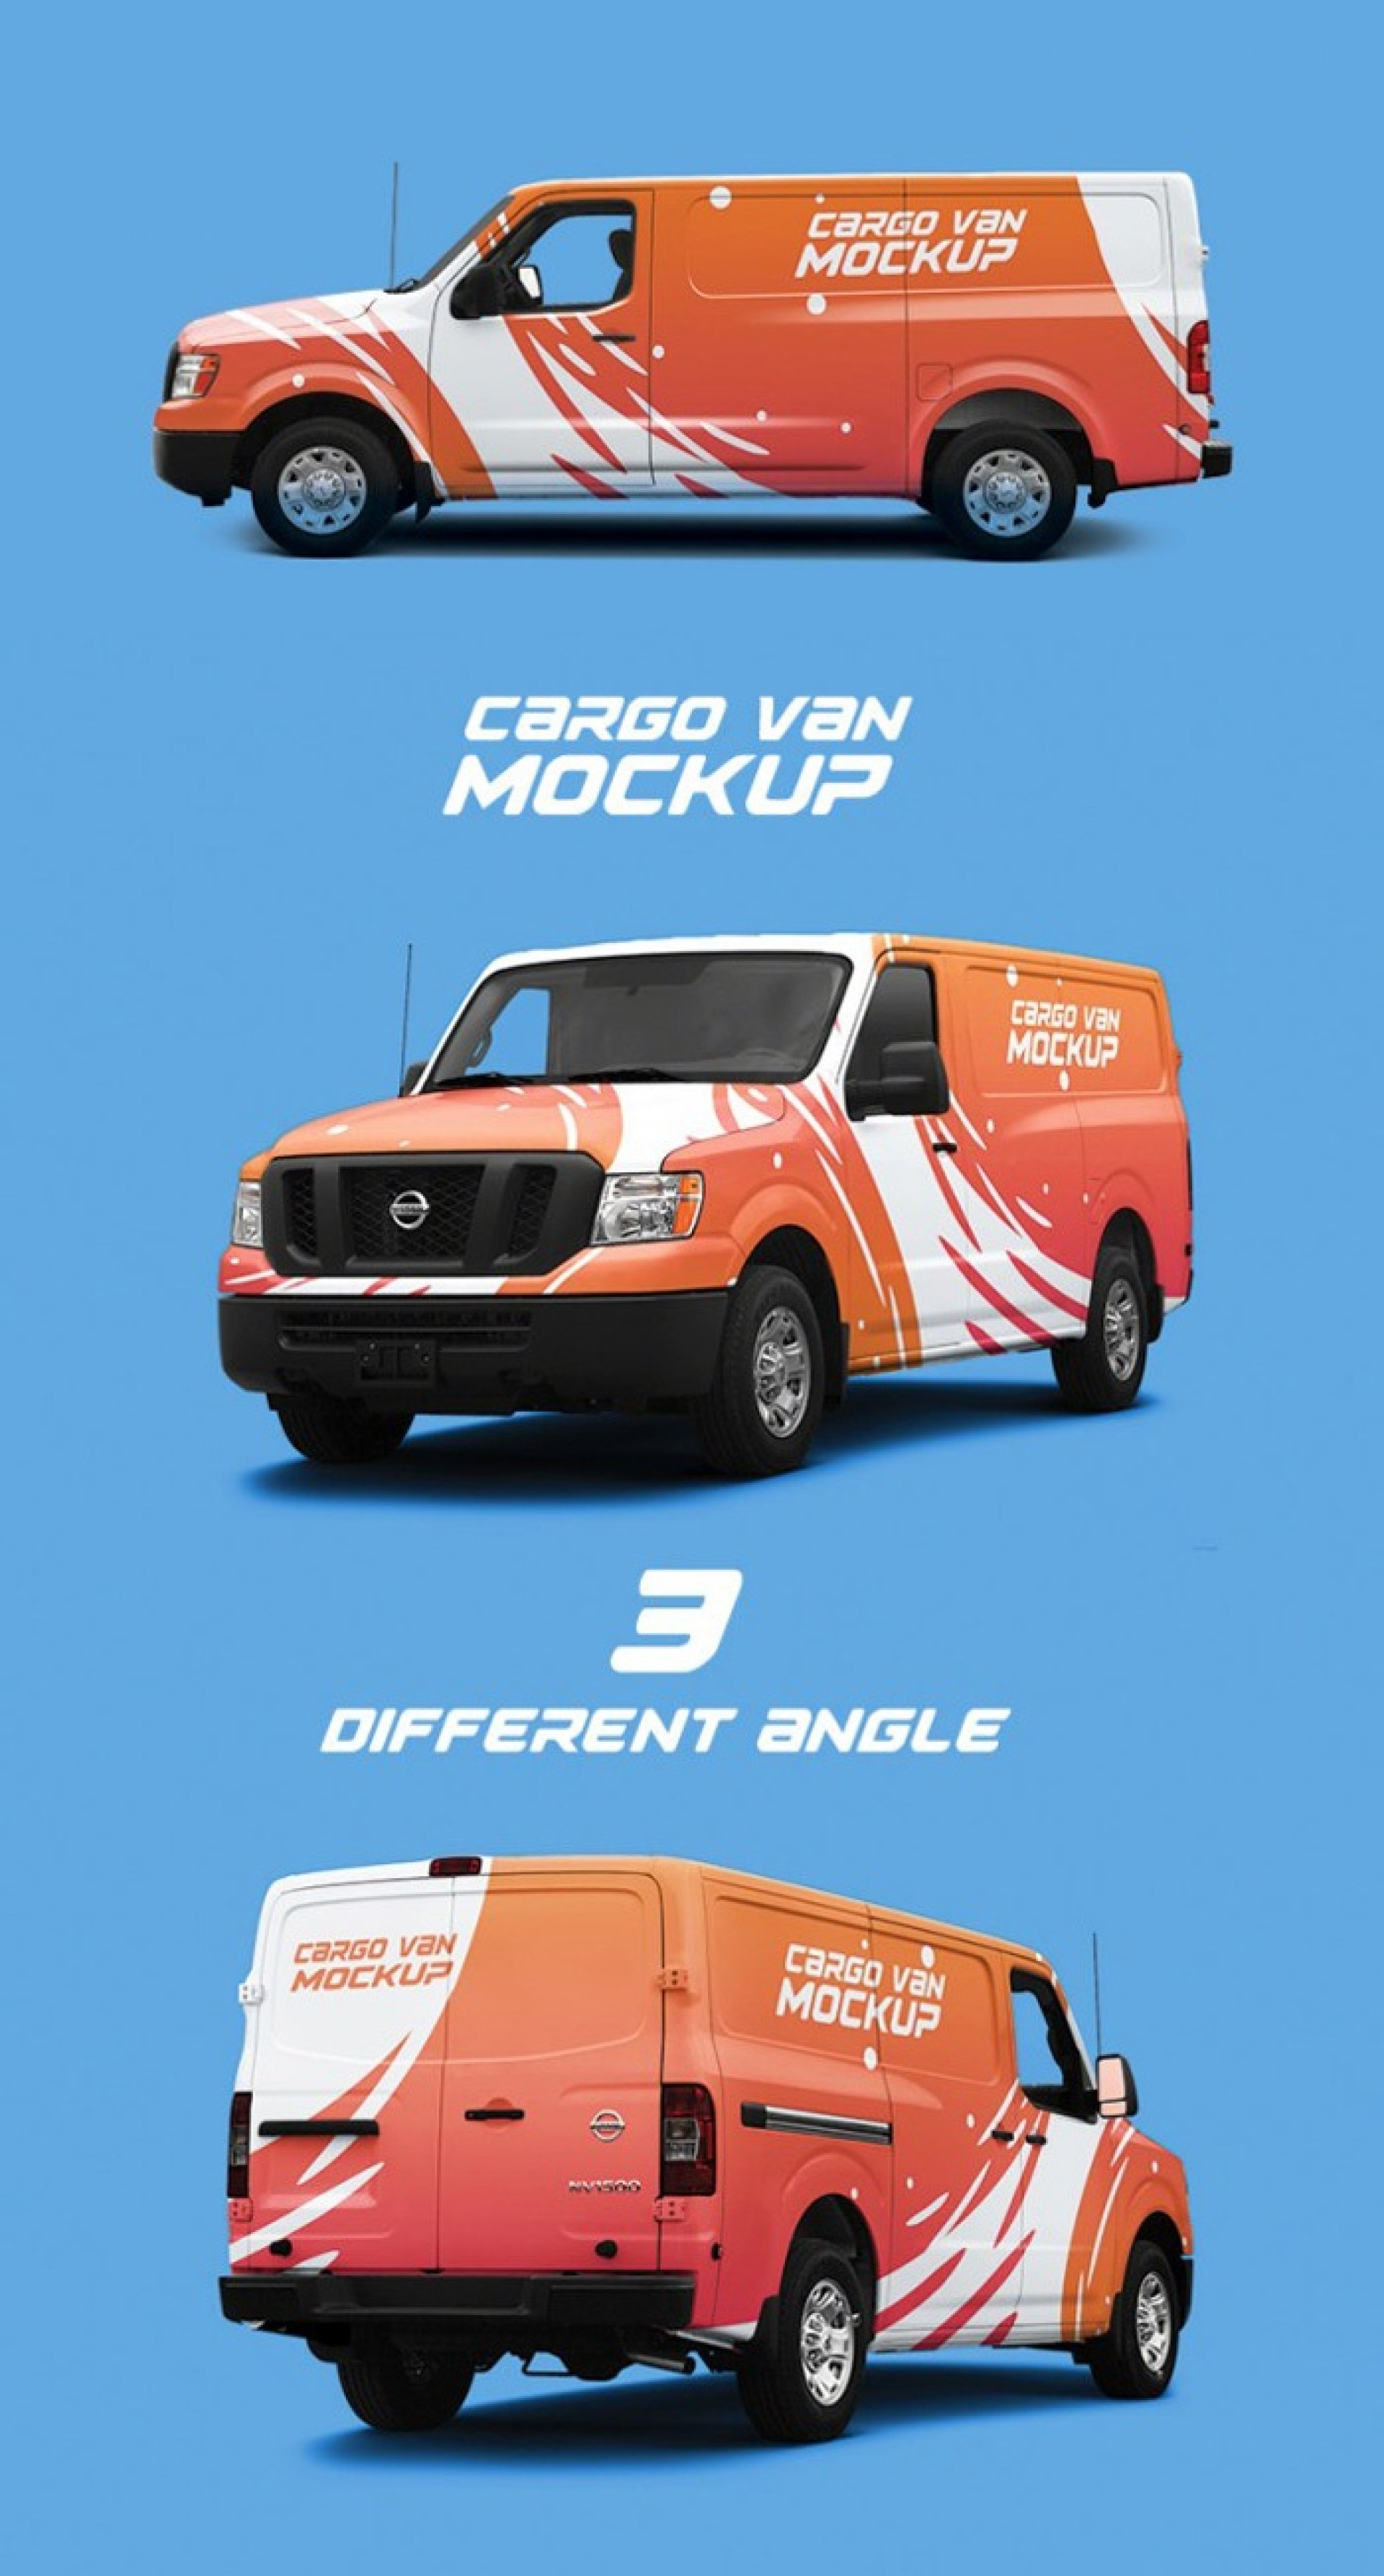 002 Striking Vehicle Wrap Template Free Download Highest Quality  Downloads Car1920